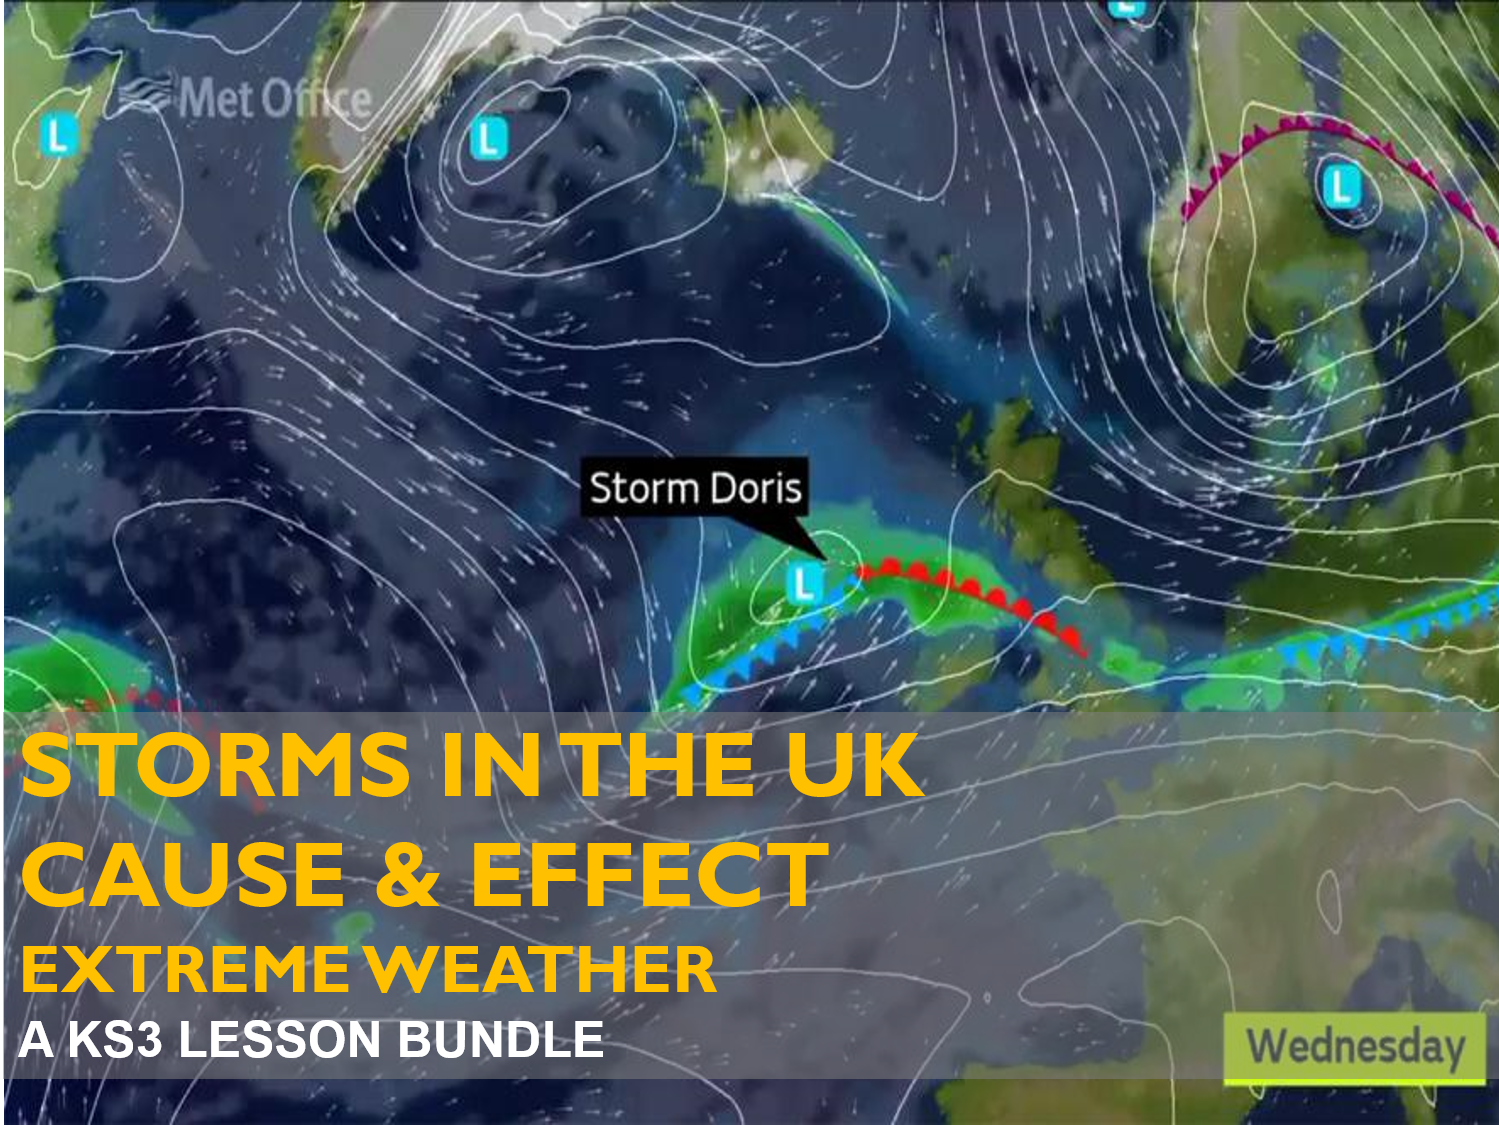 Extreme Weather : Storms in the UK - Cause & Effect Bundle